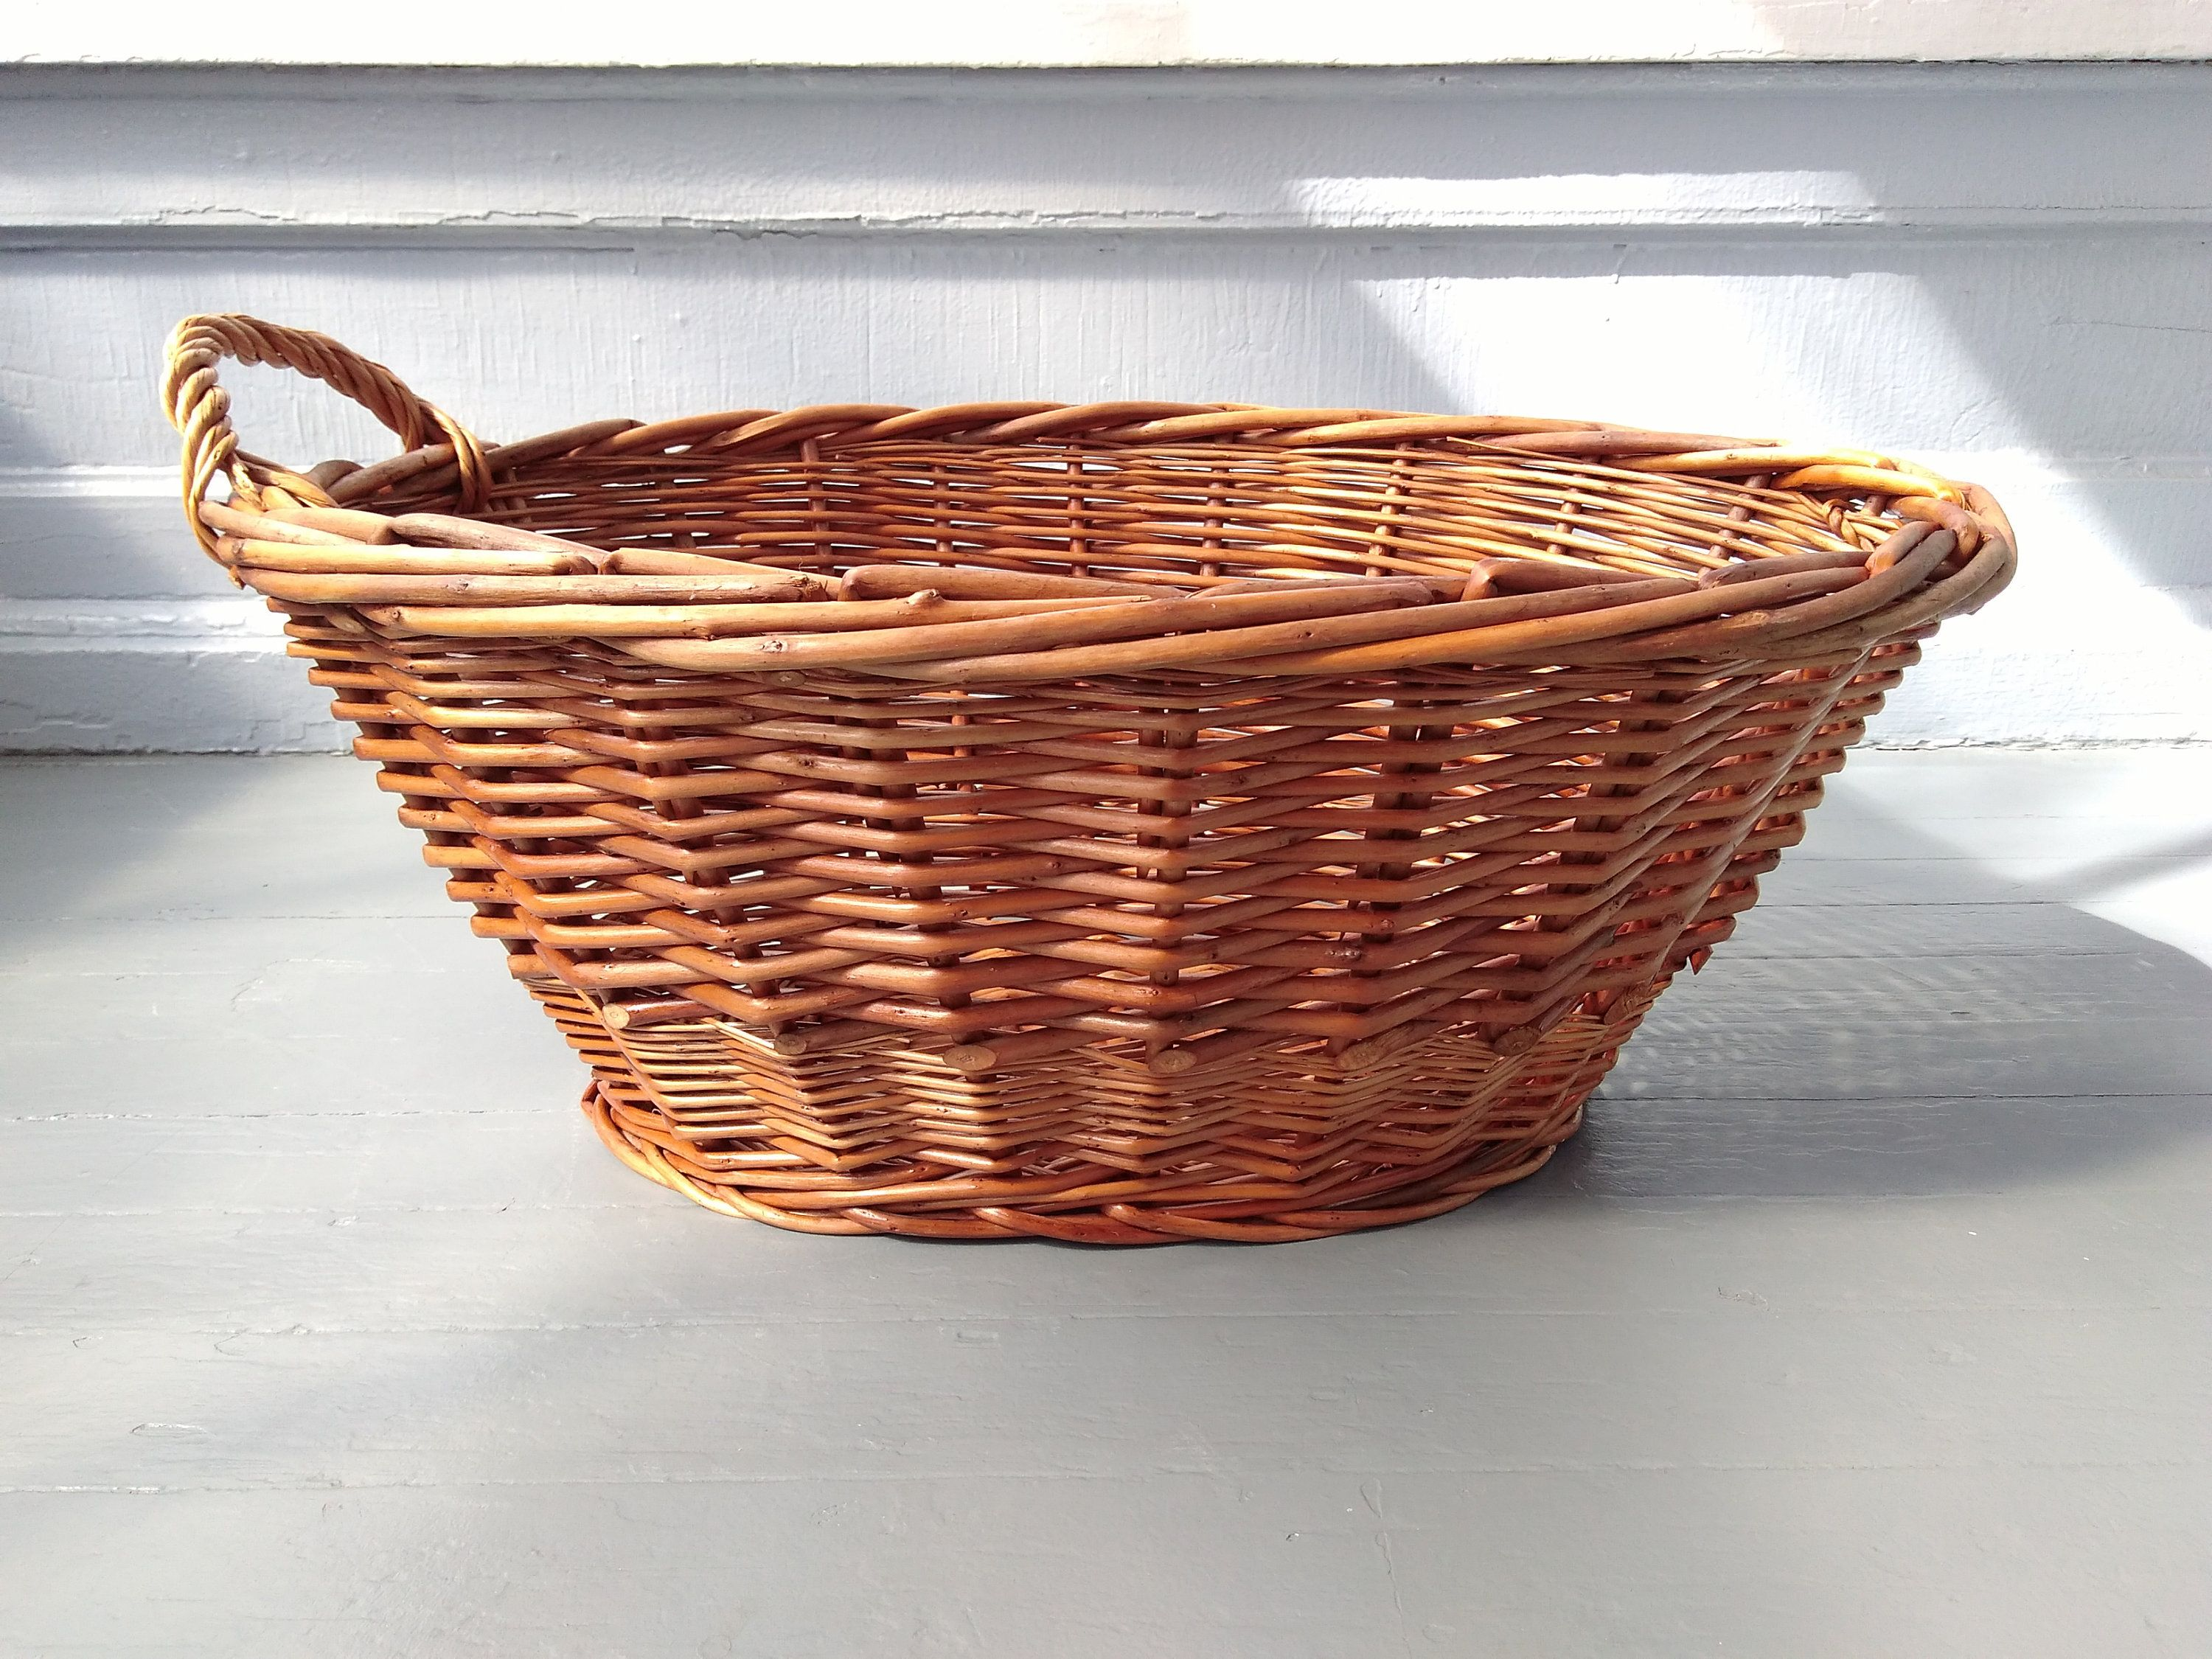 Large Vintage Wicker Laundry Basket Display Decorative Rustic Farmhouse Country Home Decor Rhymeswithdaughter